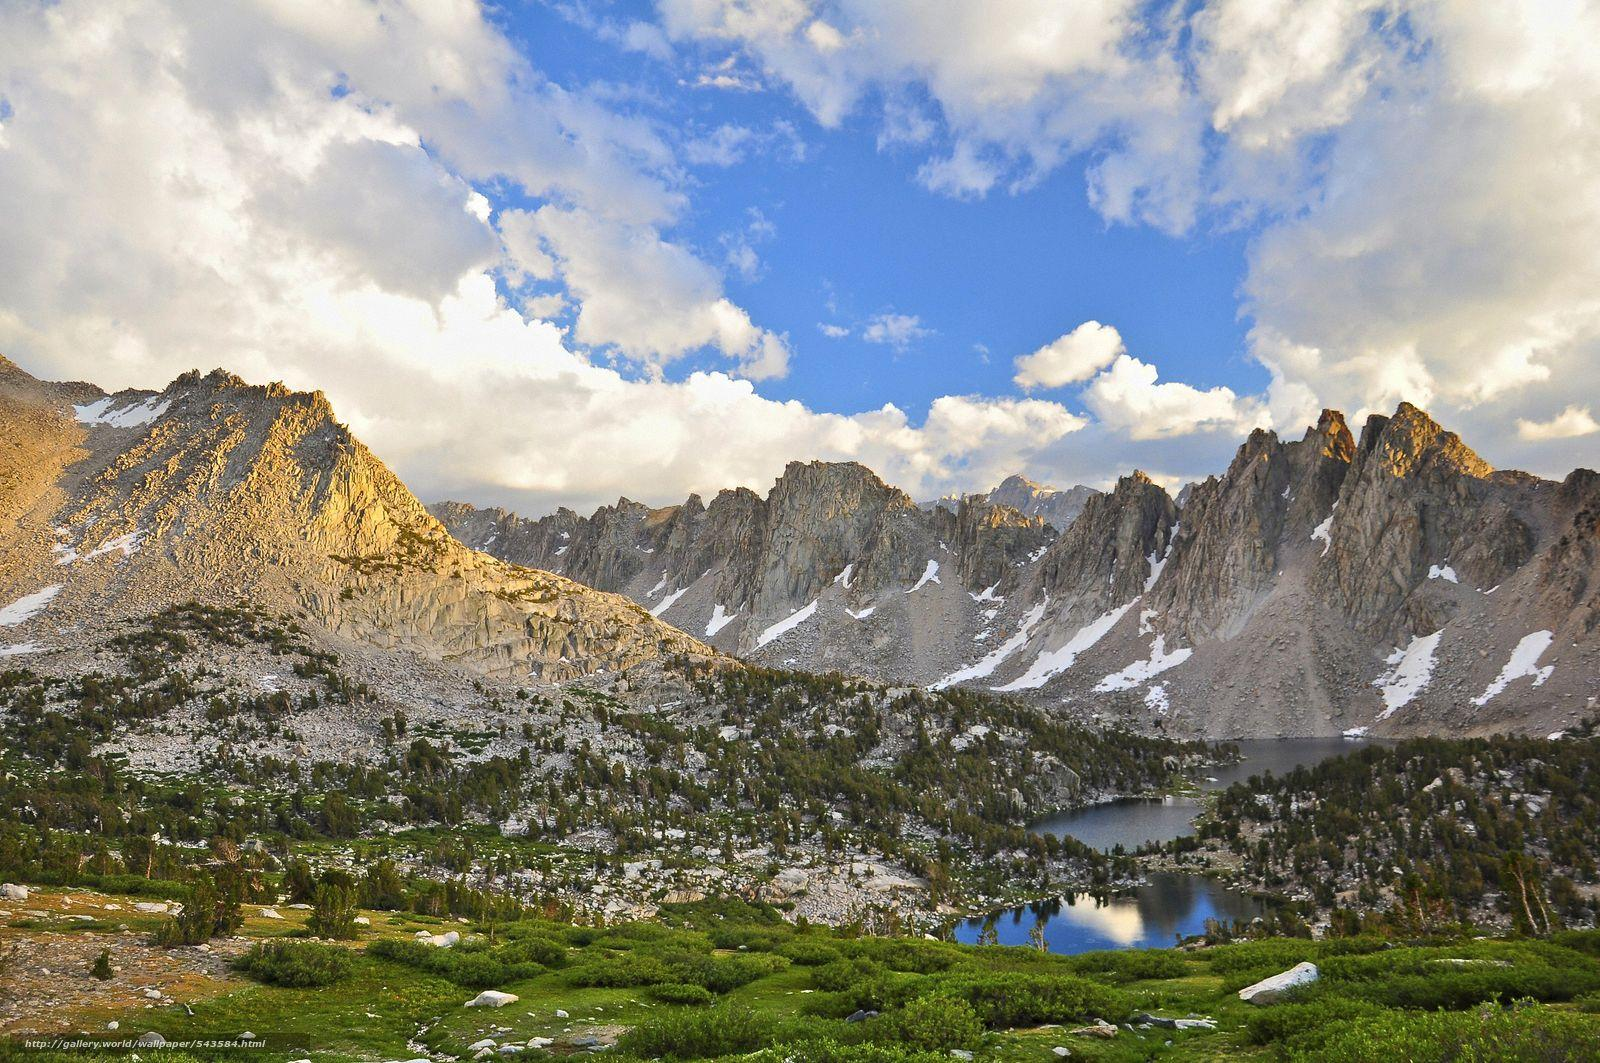 Download wallpapers sunset, Kearsarge Pinnacles, Kings Canyon